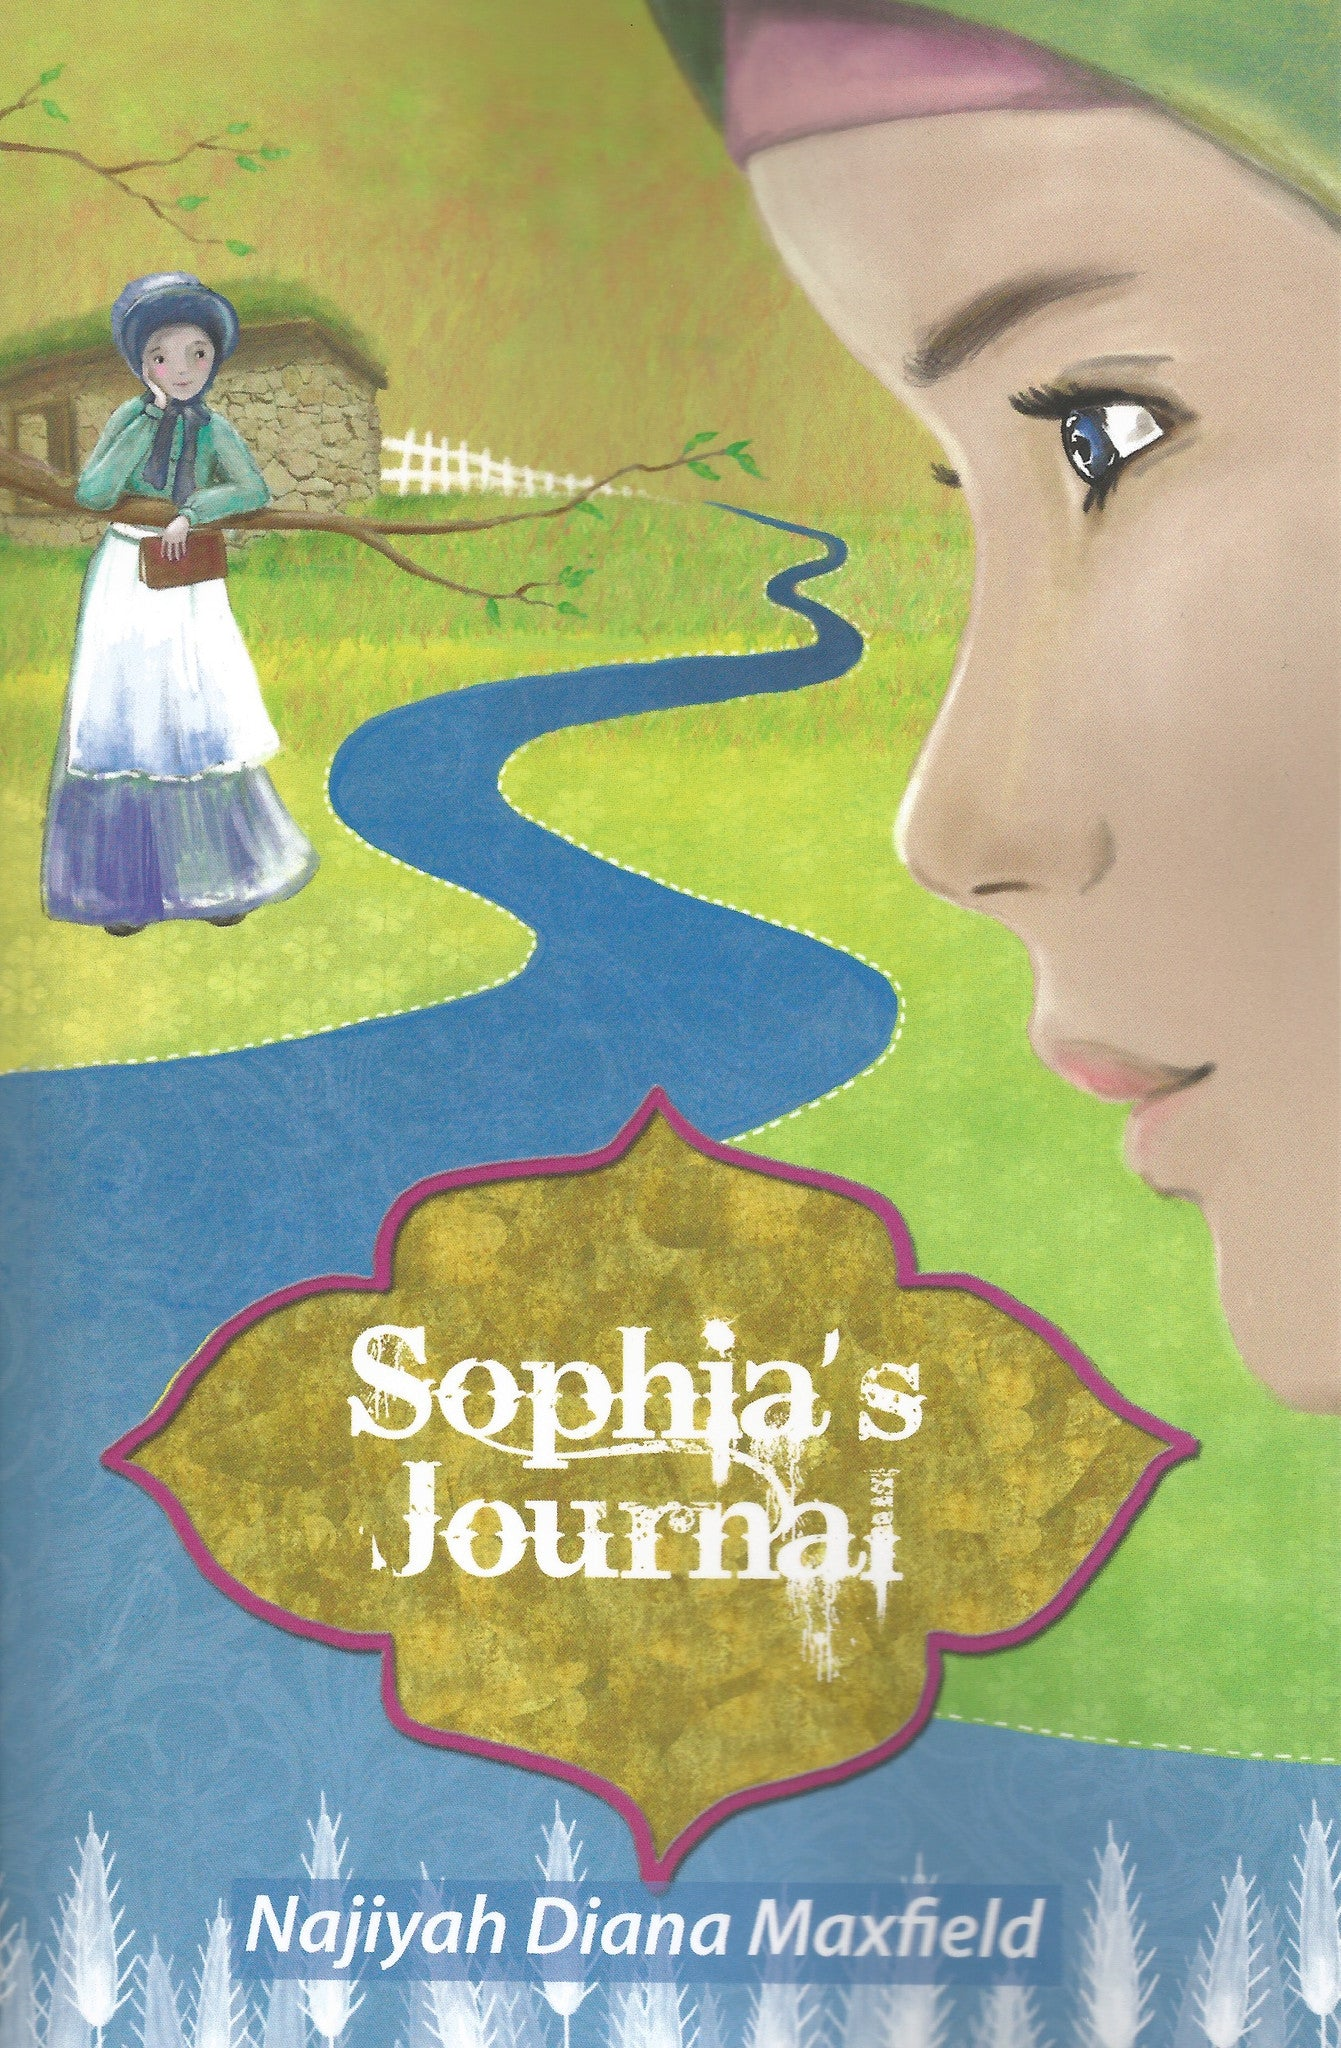 Sophia's Journal , Book - Daybreak International Bookstore, Daybreak Press Global Bookshop